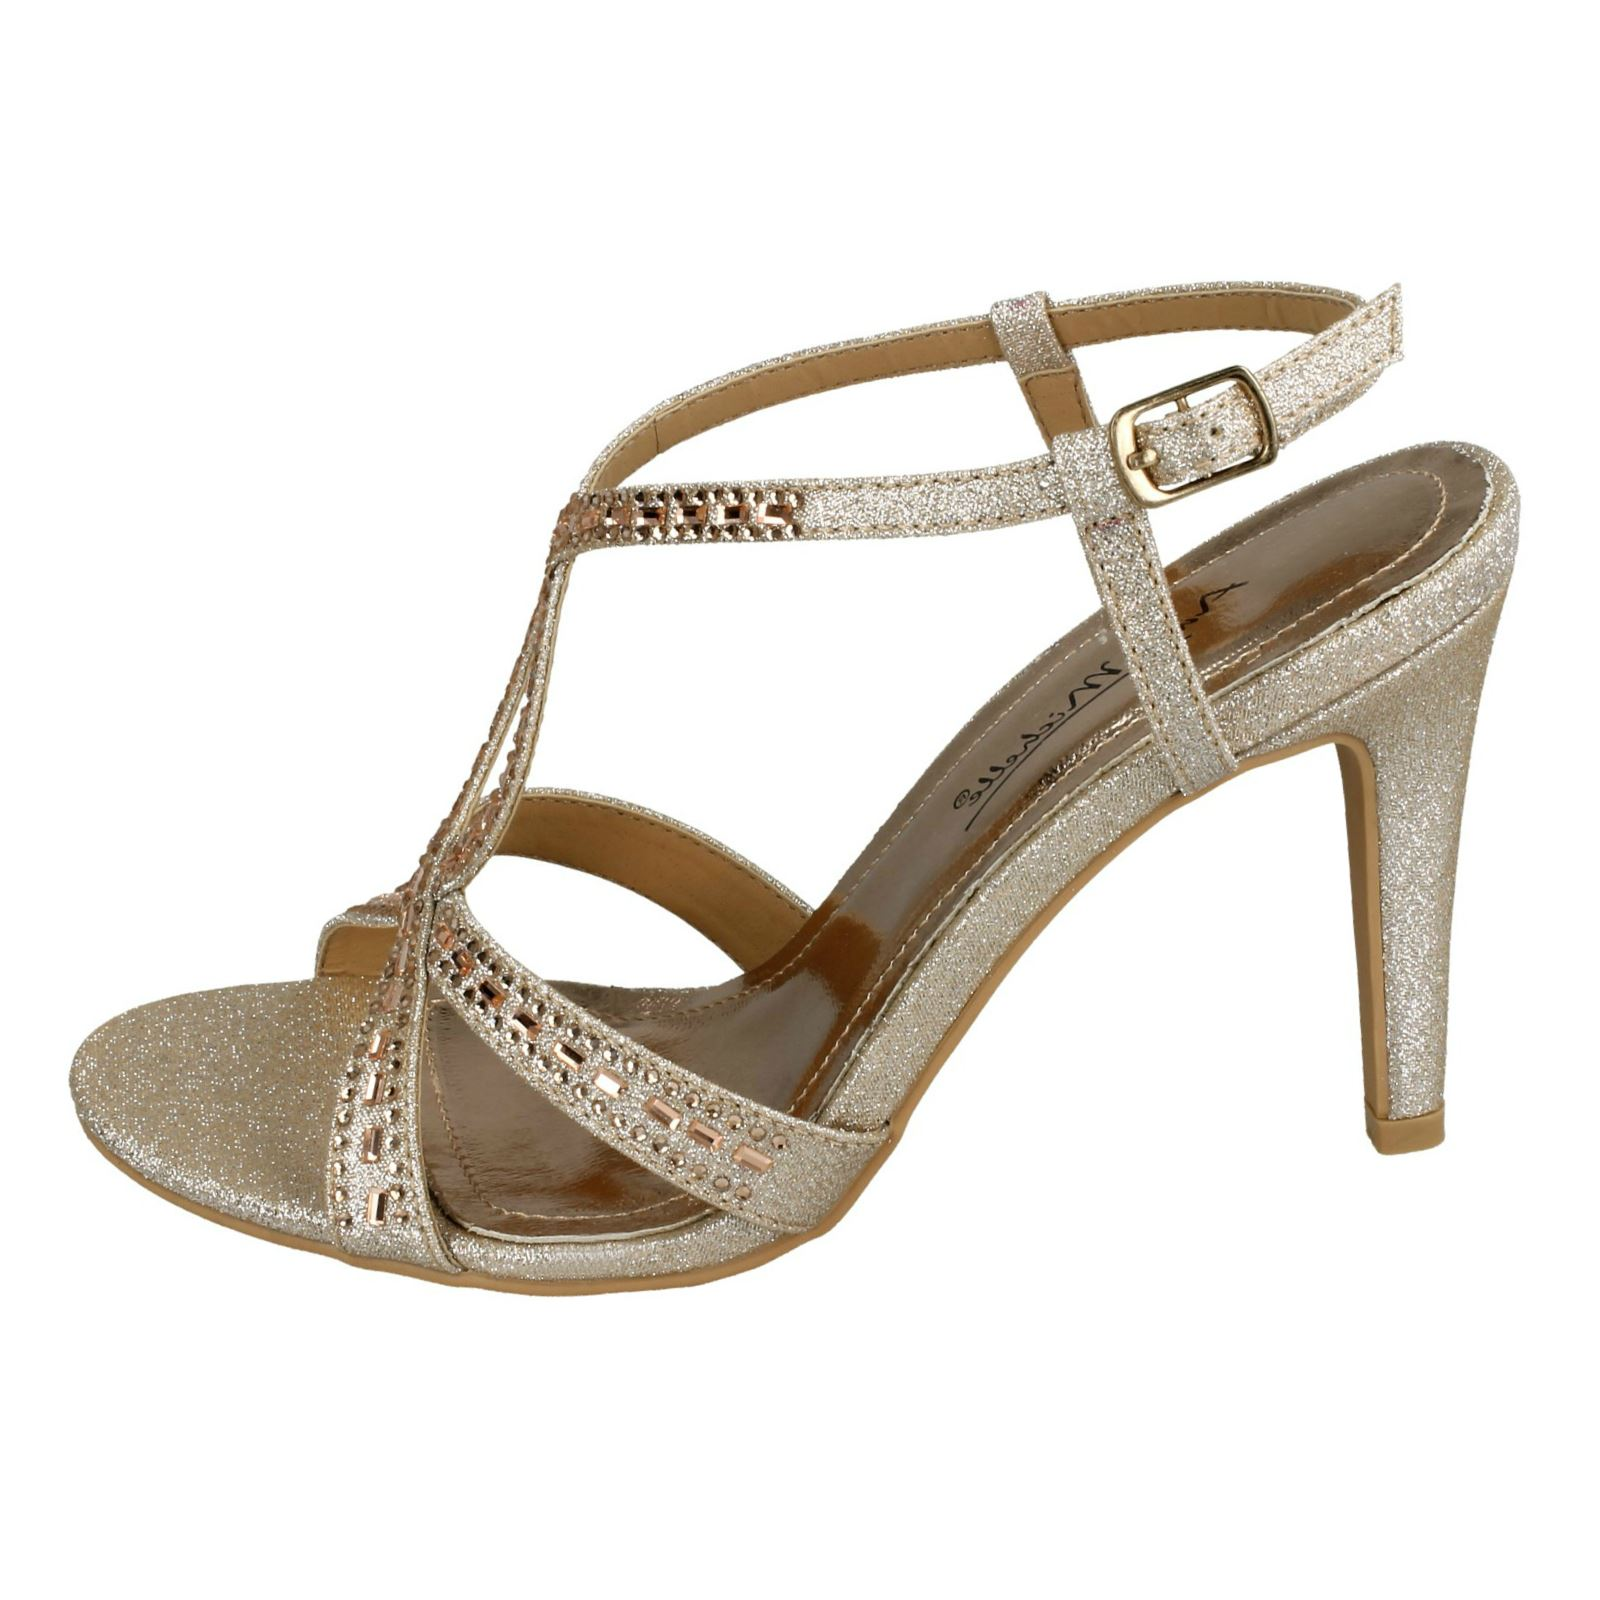 e0383a8cf19c Anne-Michelle-Ladies-Jewelled-Strappy-Sandals thumbnail 10